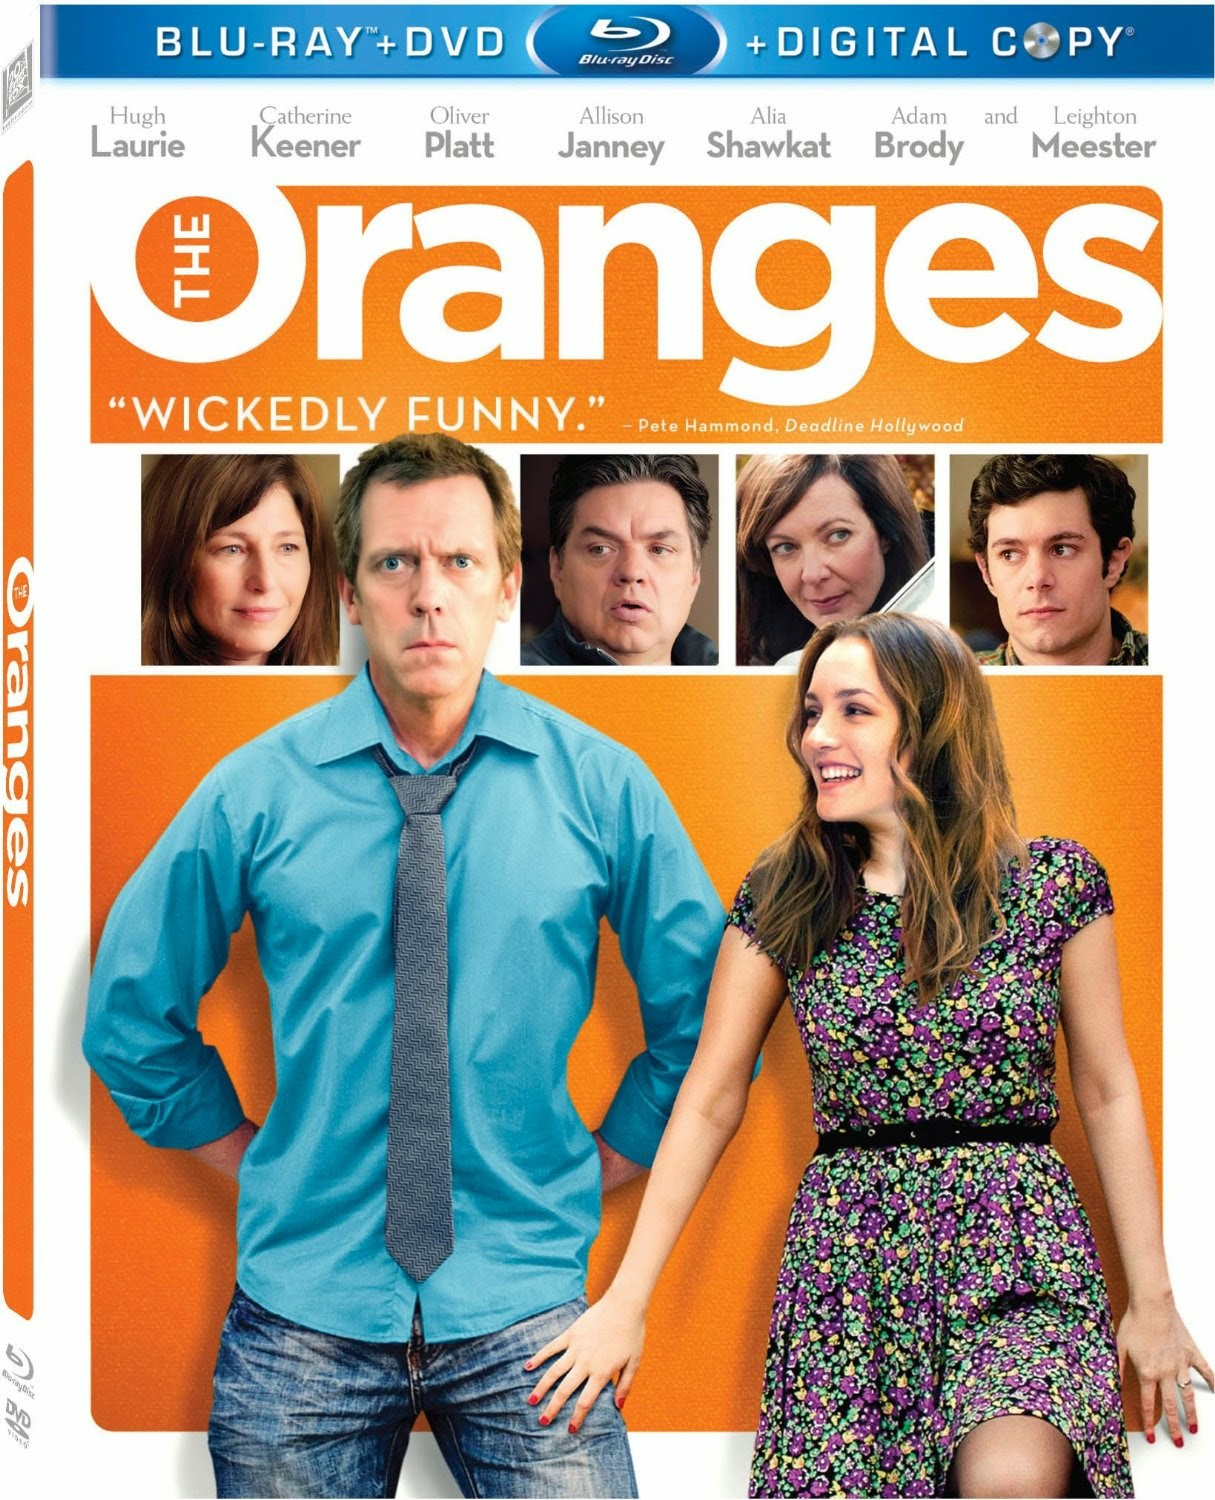 New-comedy-movies-on-dvd-2014-this-week-at-blockbuster